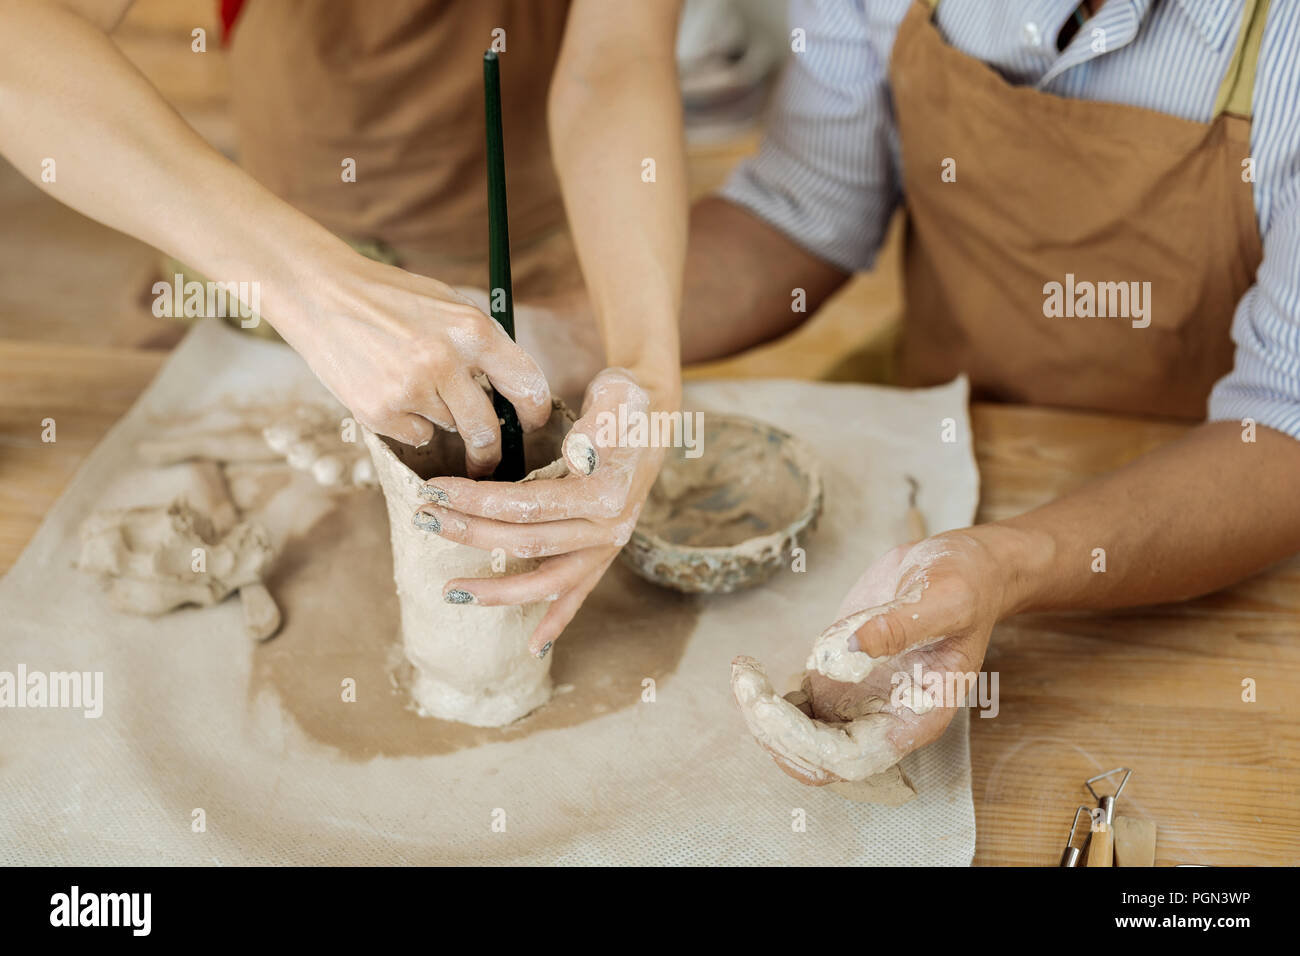 Female ceramist using working tool for forming vase - Stock Image